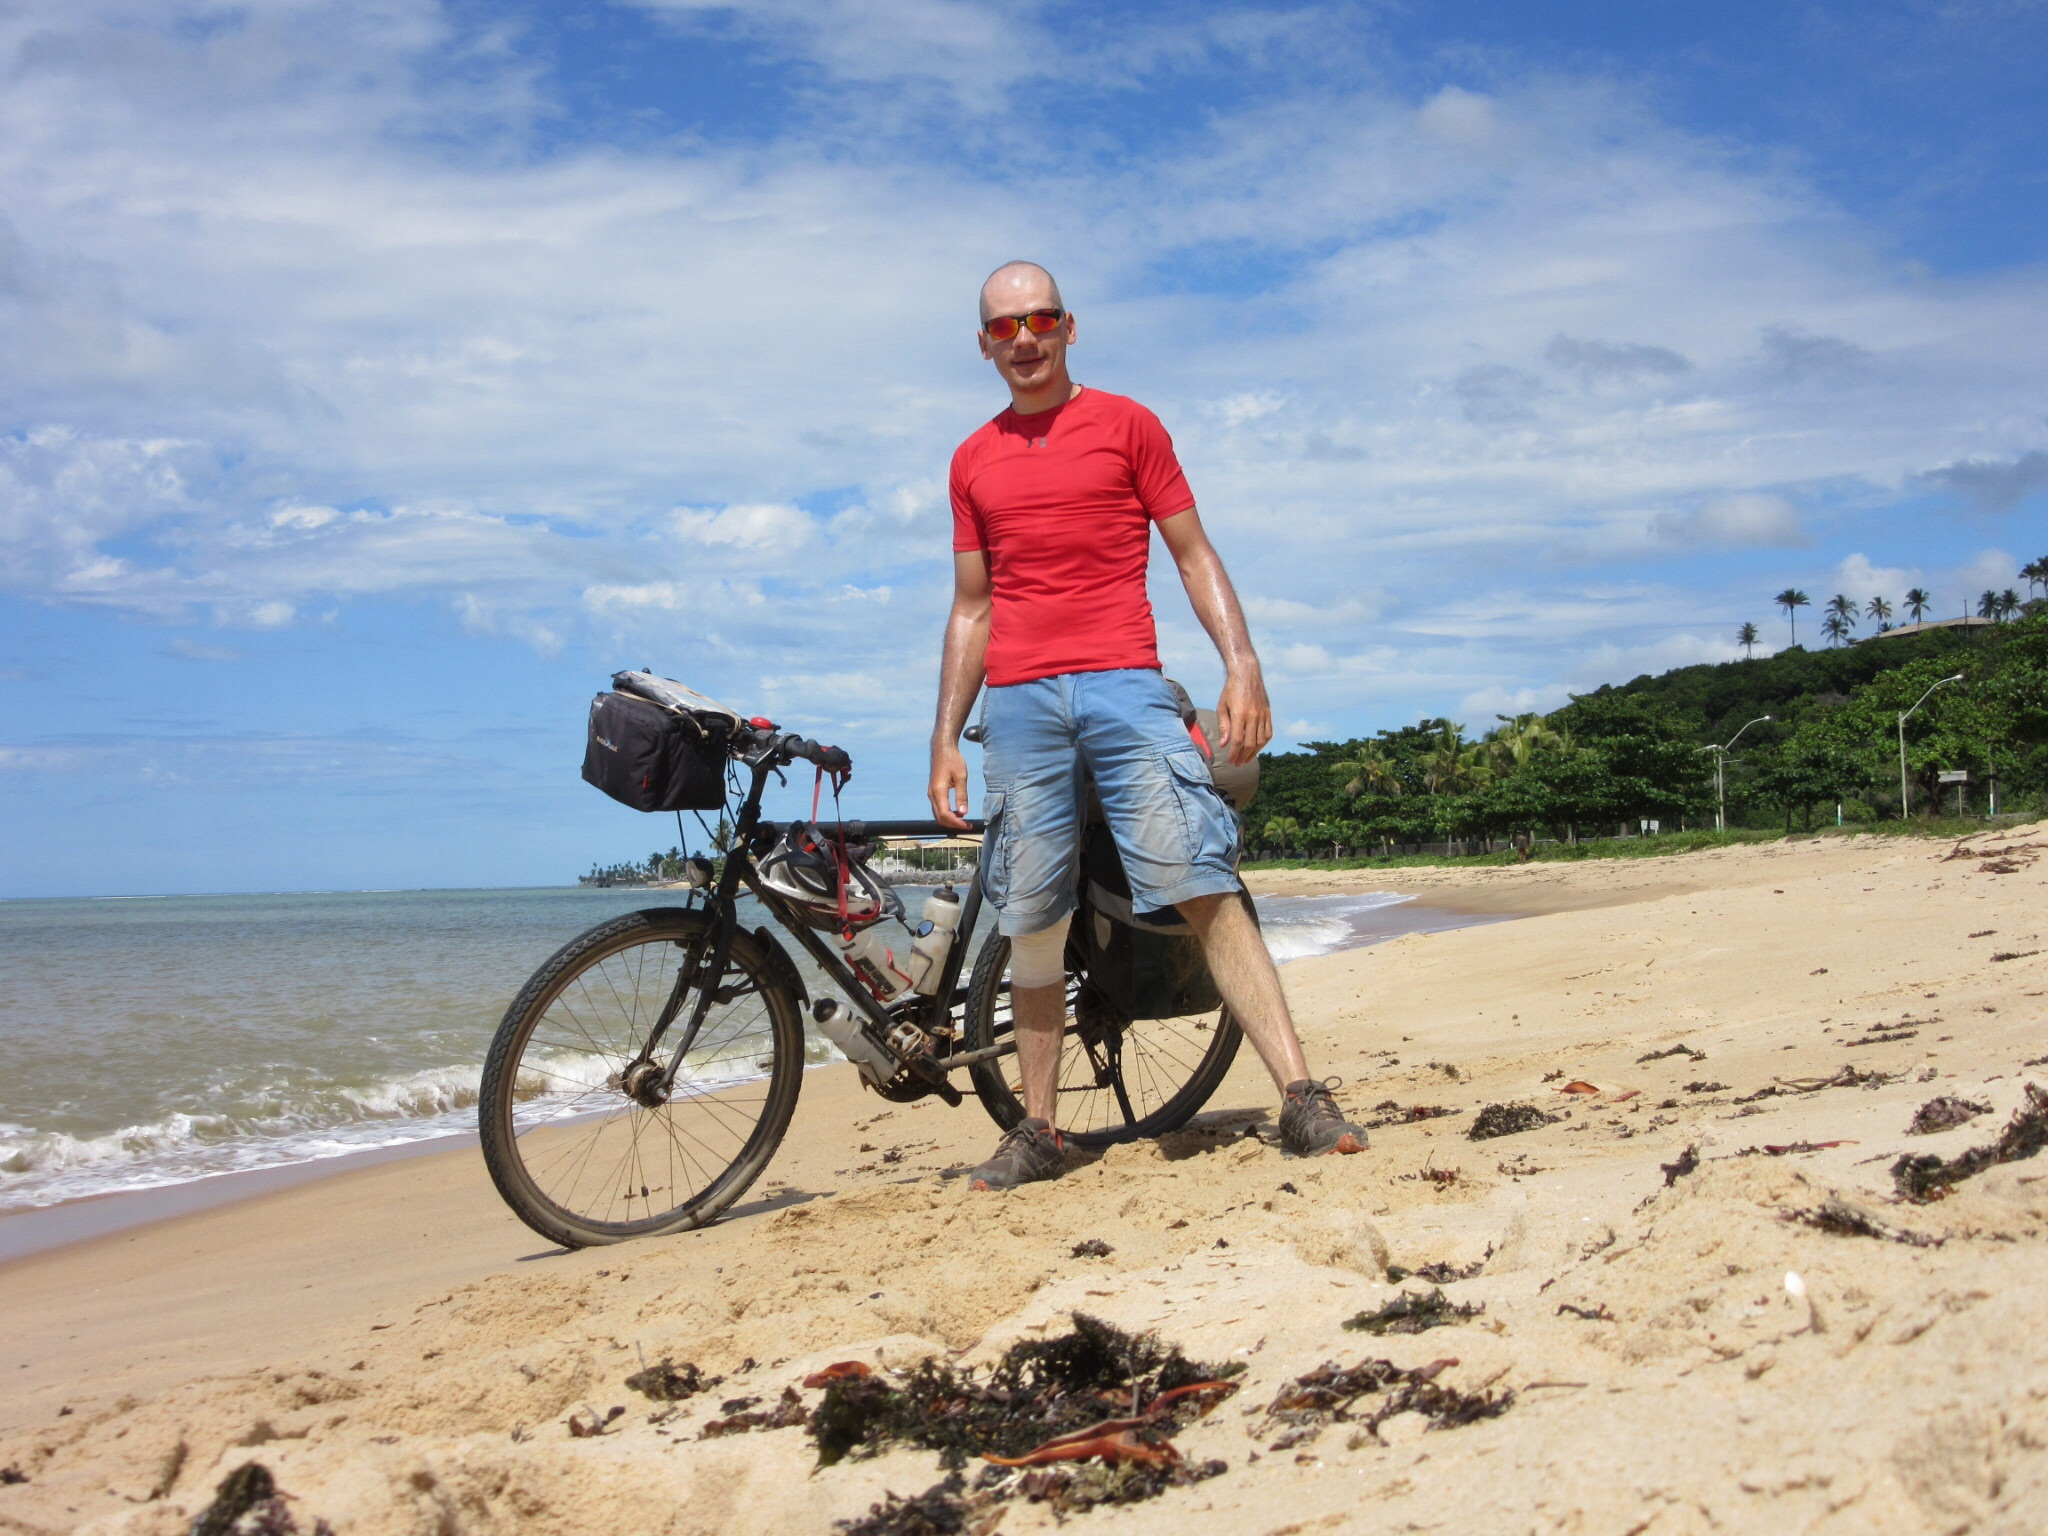 Pacific to Atlantic by bicycle